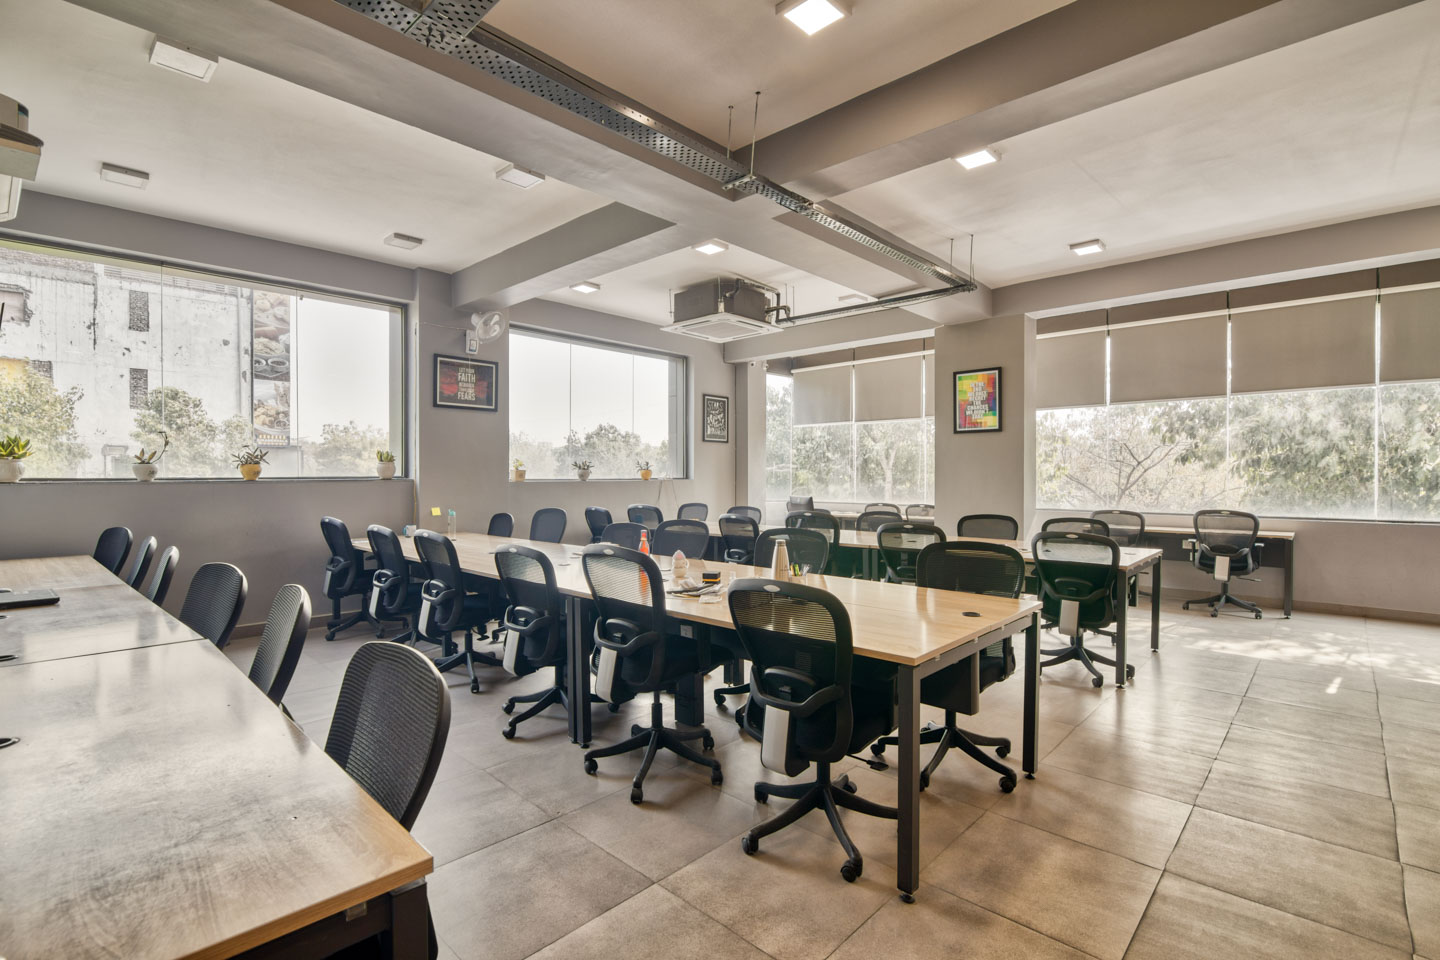 Coworking space in Sector 12 Dwarka, New Delhi